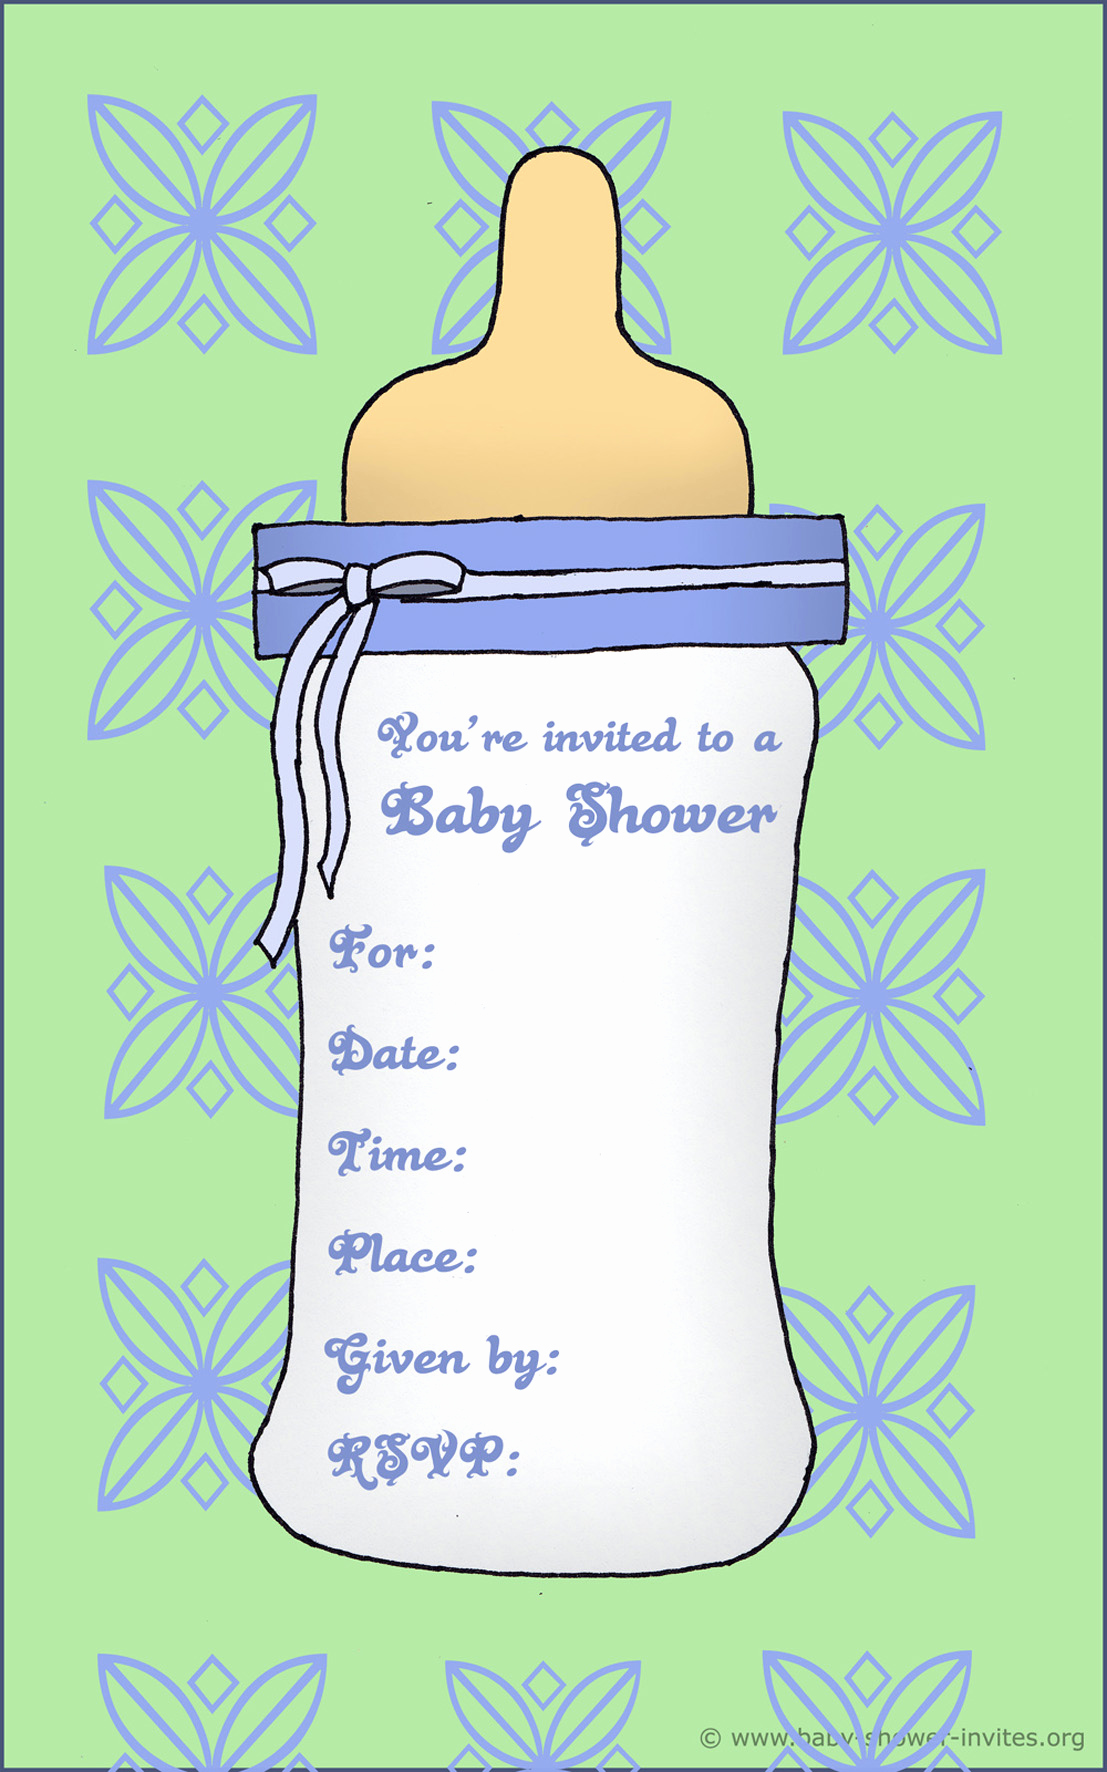 Coed Baby Shower Invitation Templates Lovely Coed Baby Shower Invitation Templates Baby Shower